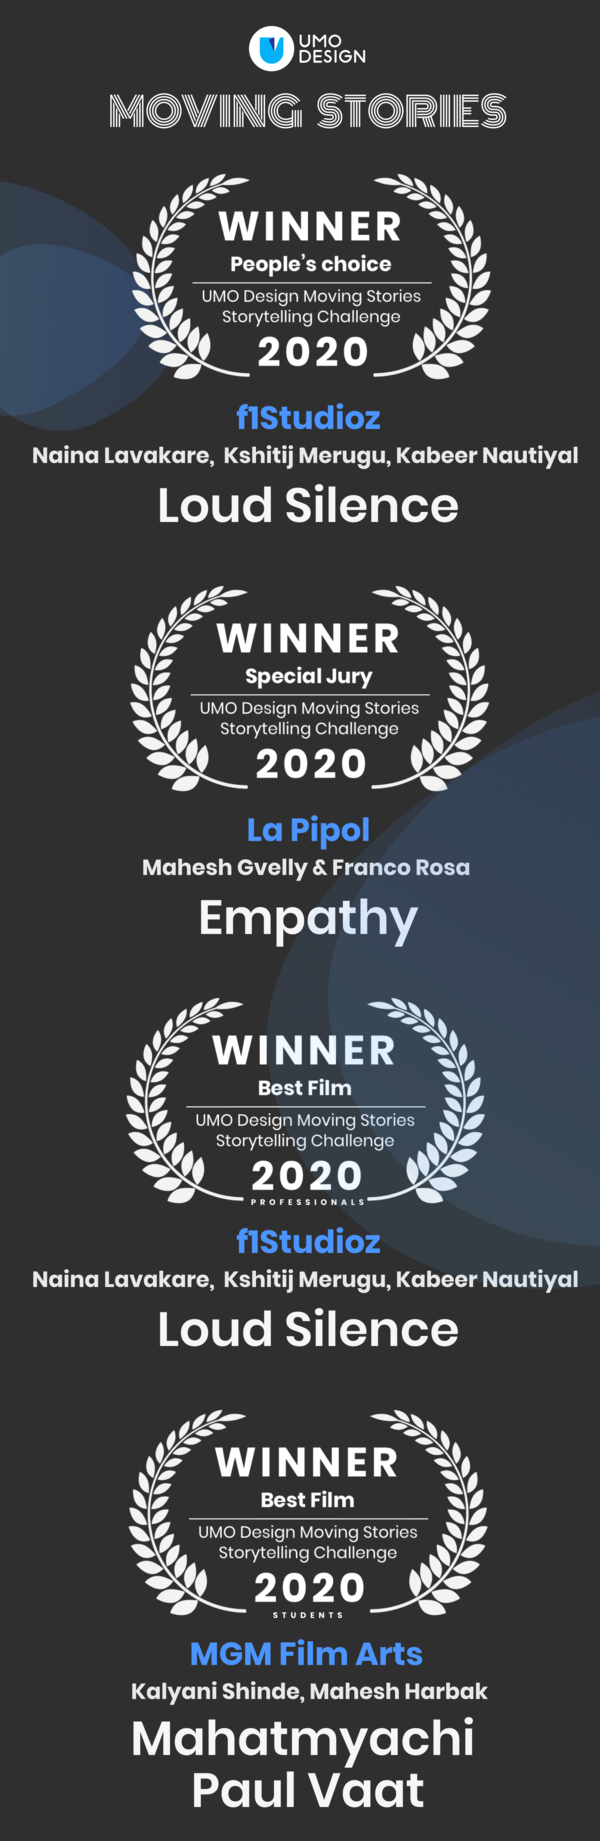 Congratulations to the winners! Their stories were truly moving!